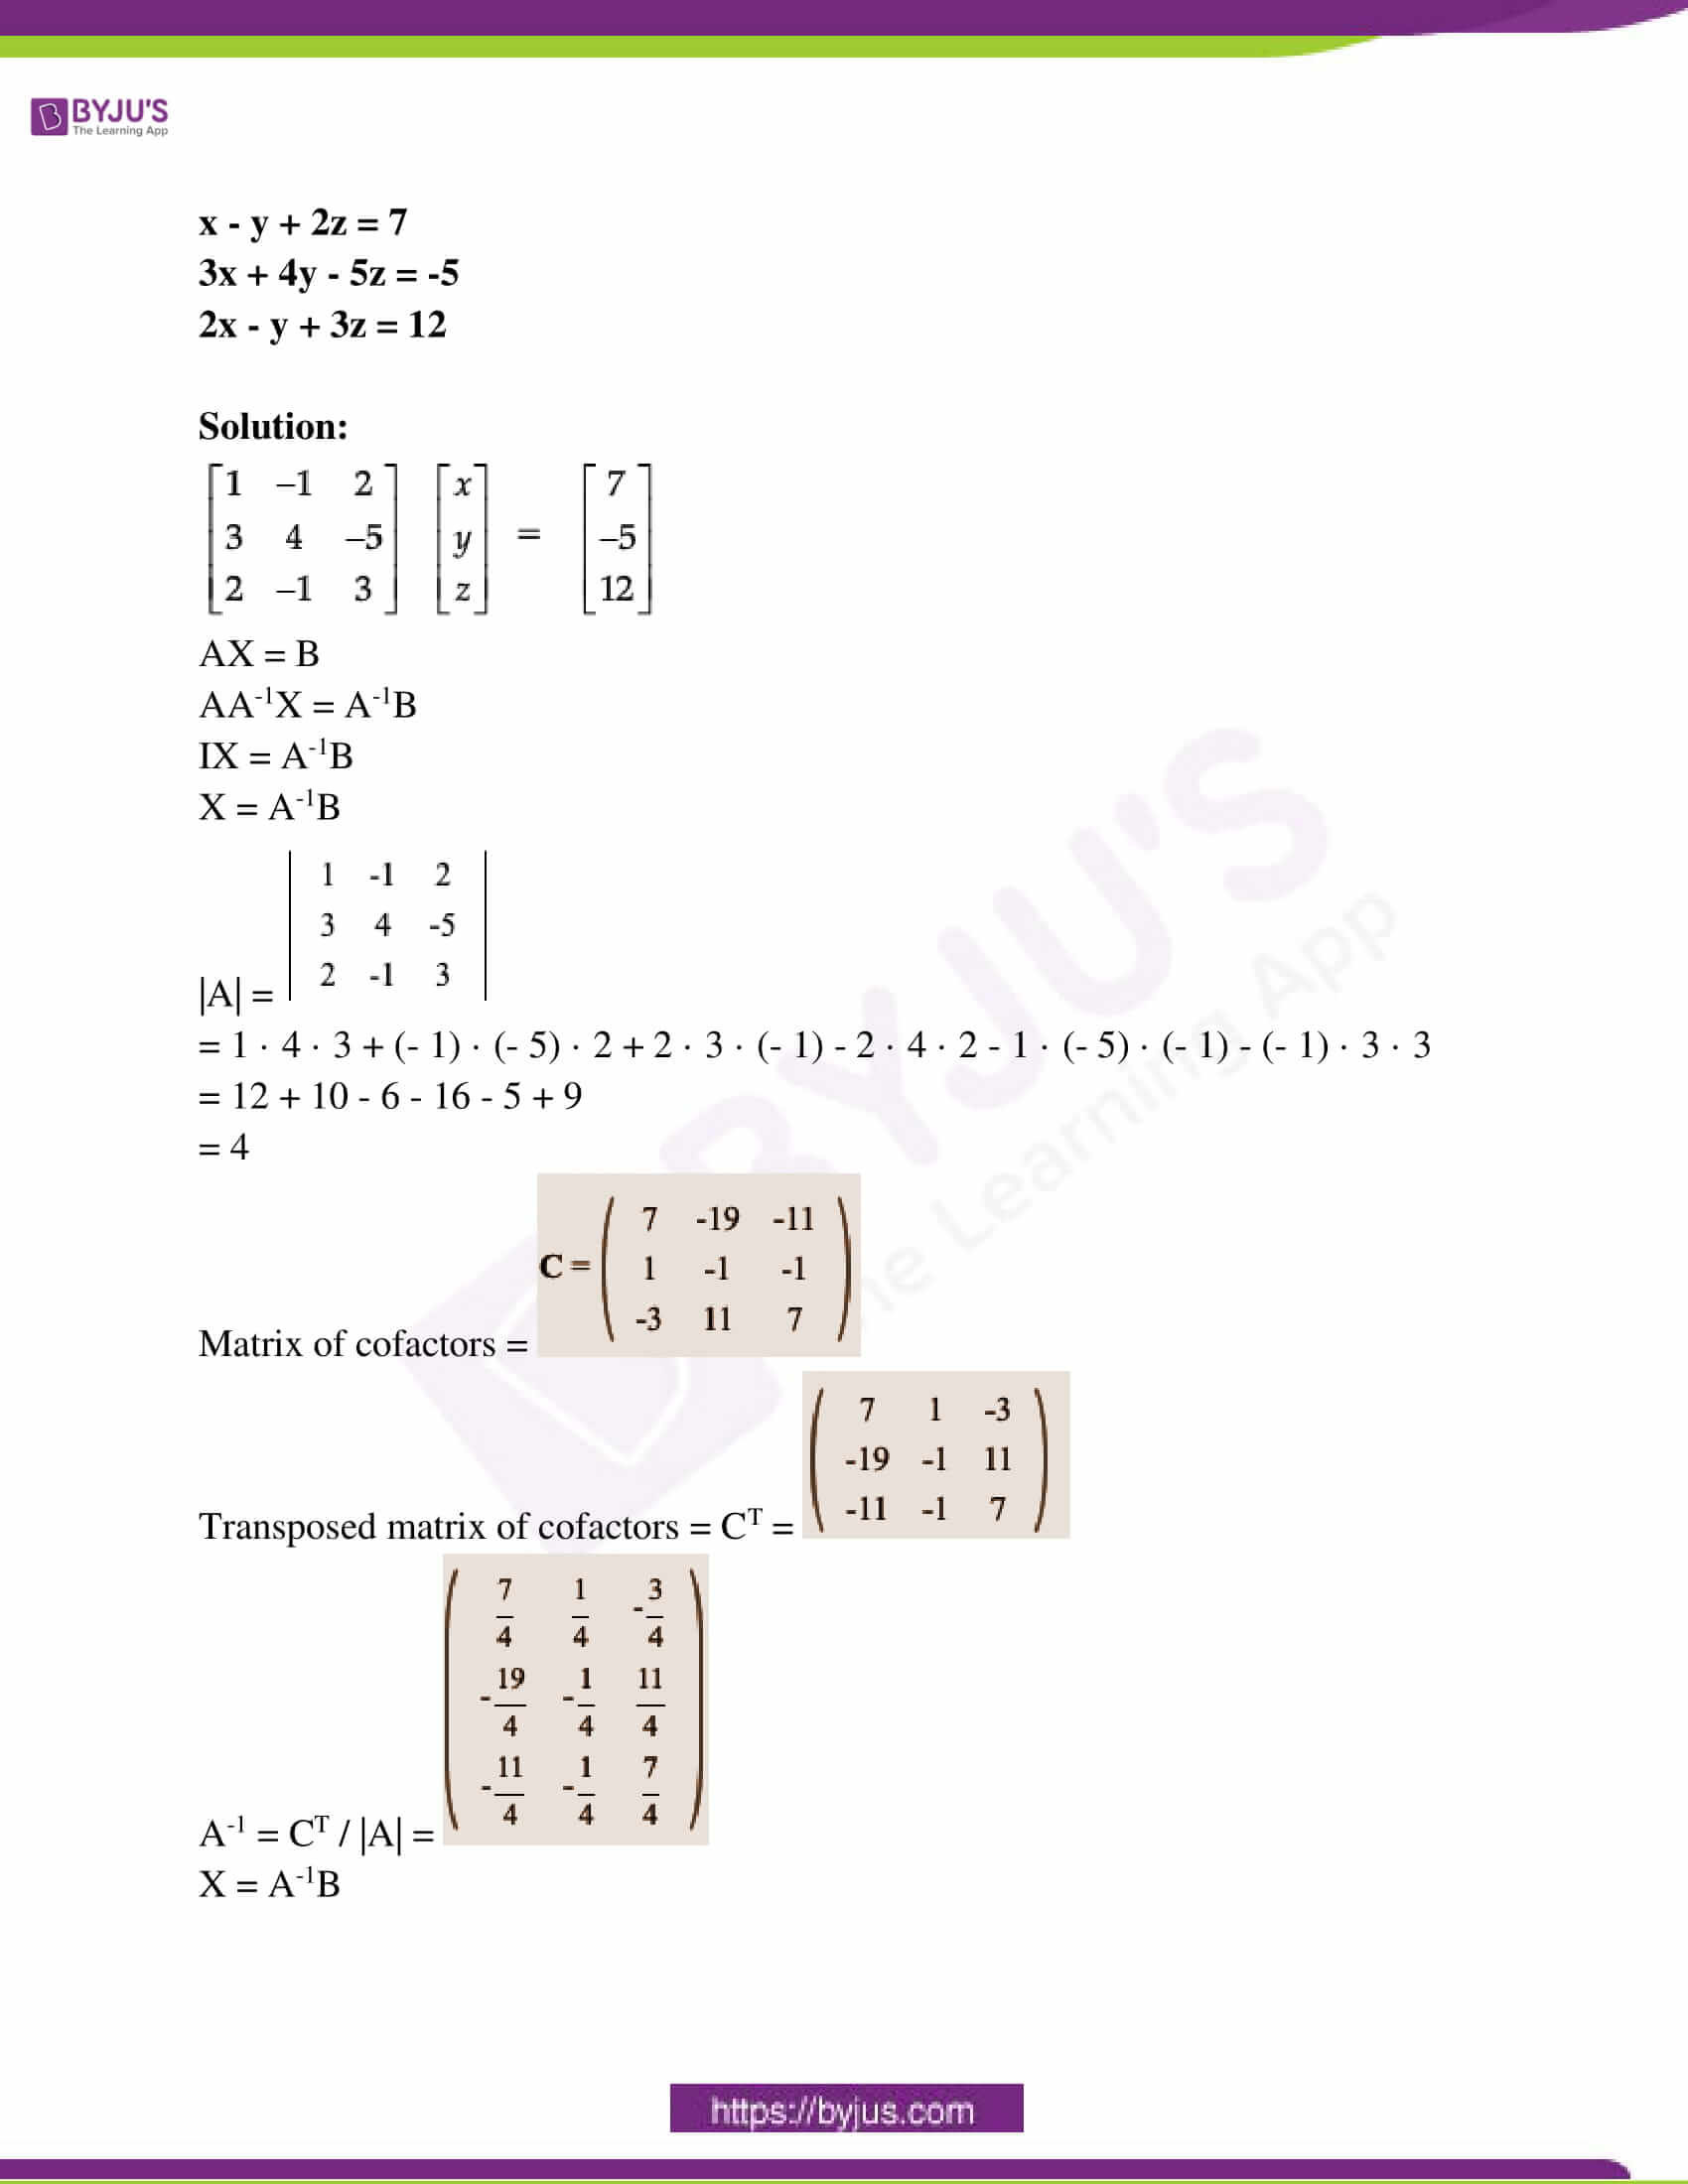 kseeb class 12 exam question paper solutions march 2018 20